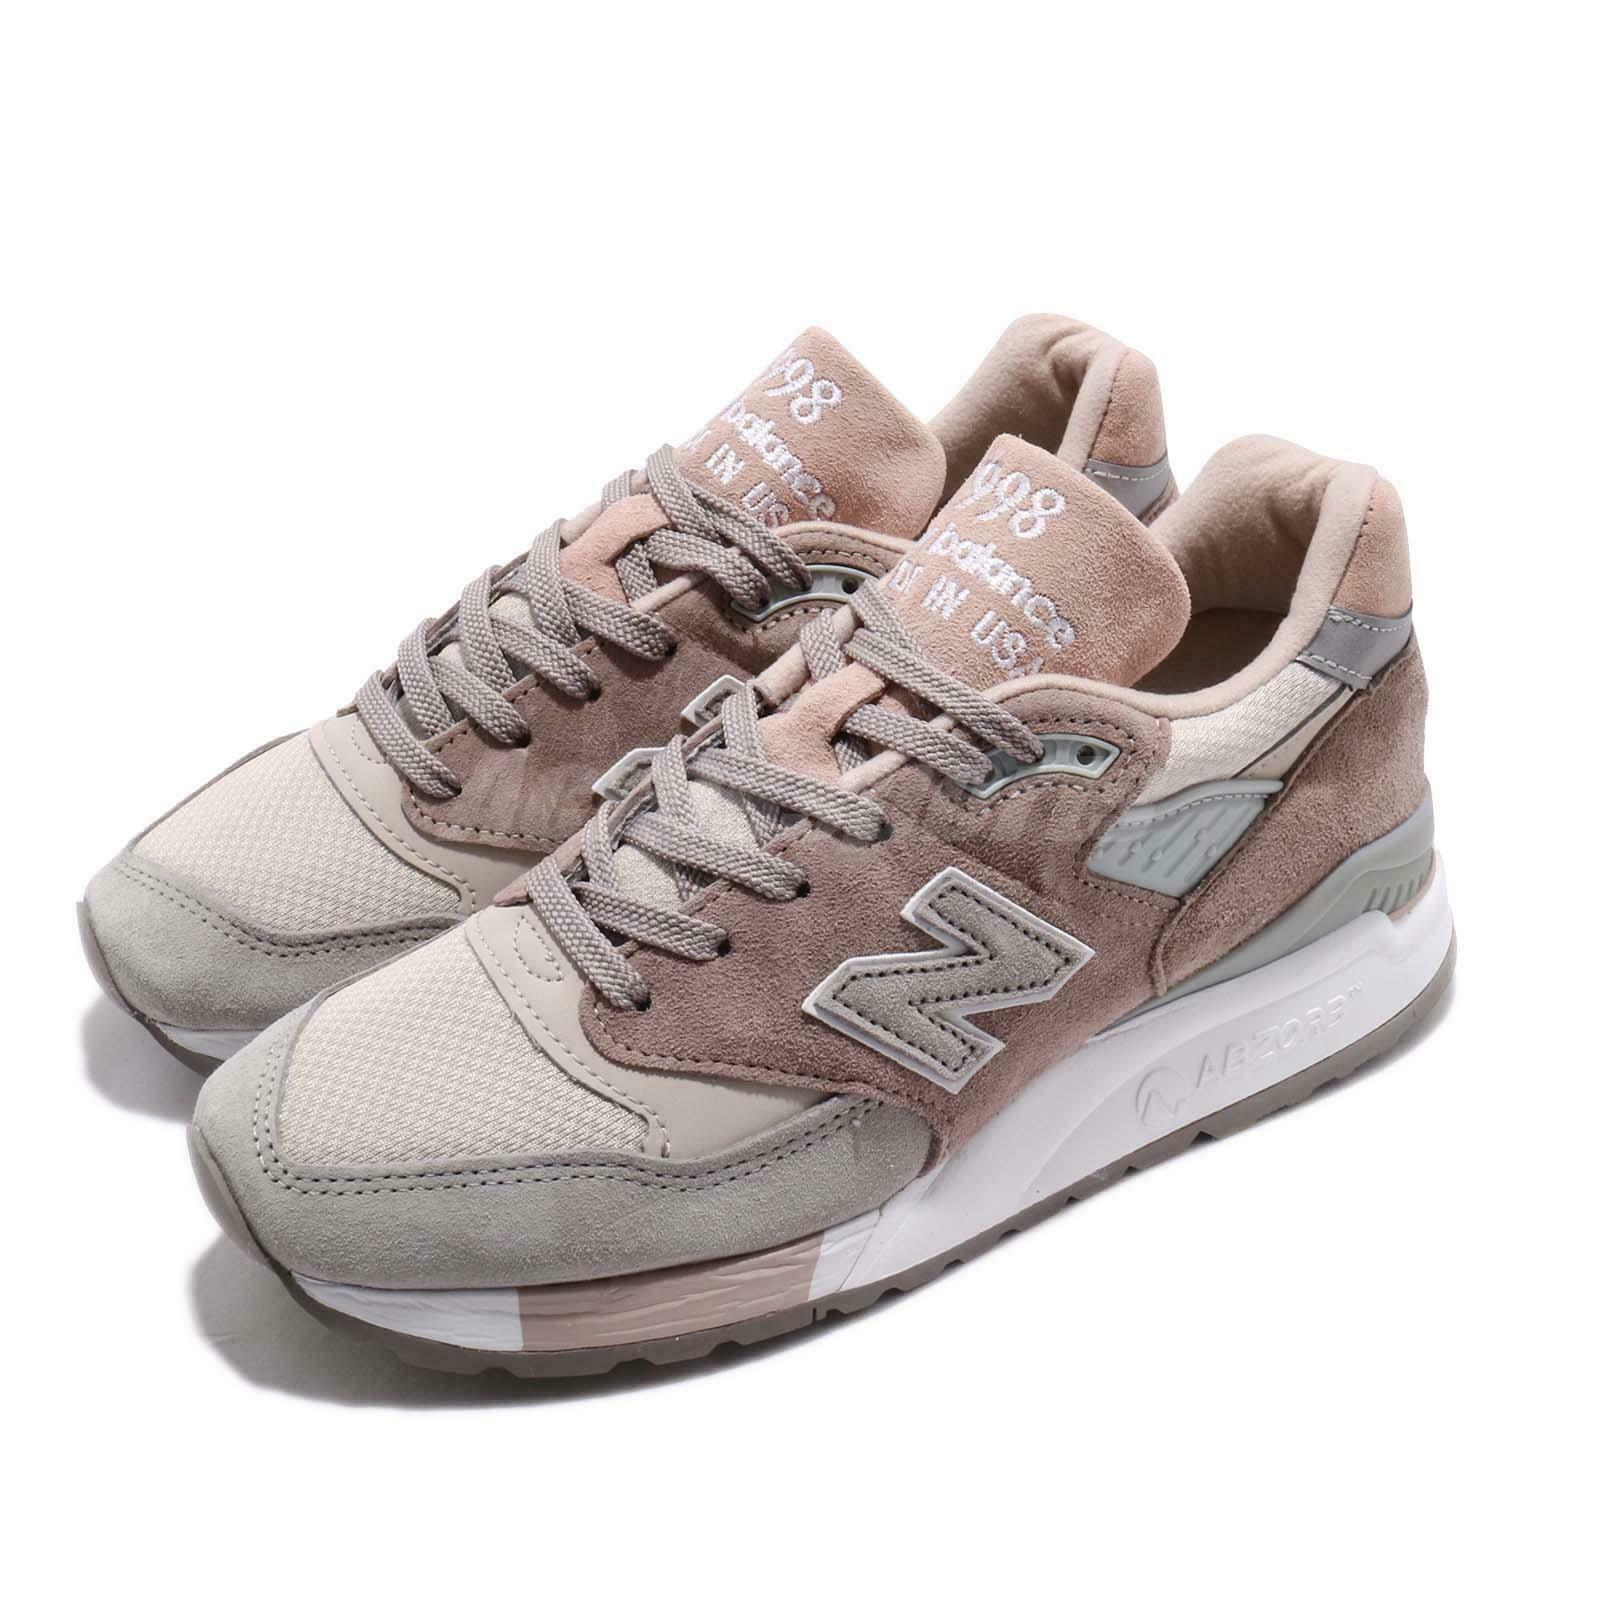 New Balance W998AWA B Made In USA Pink Grey White Women shoes Sneakers W998AWAB